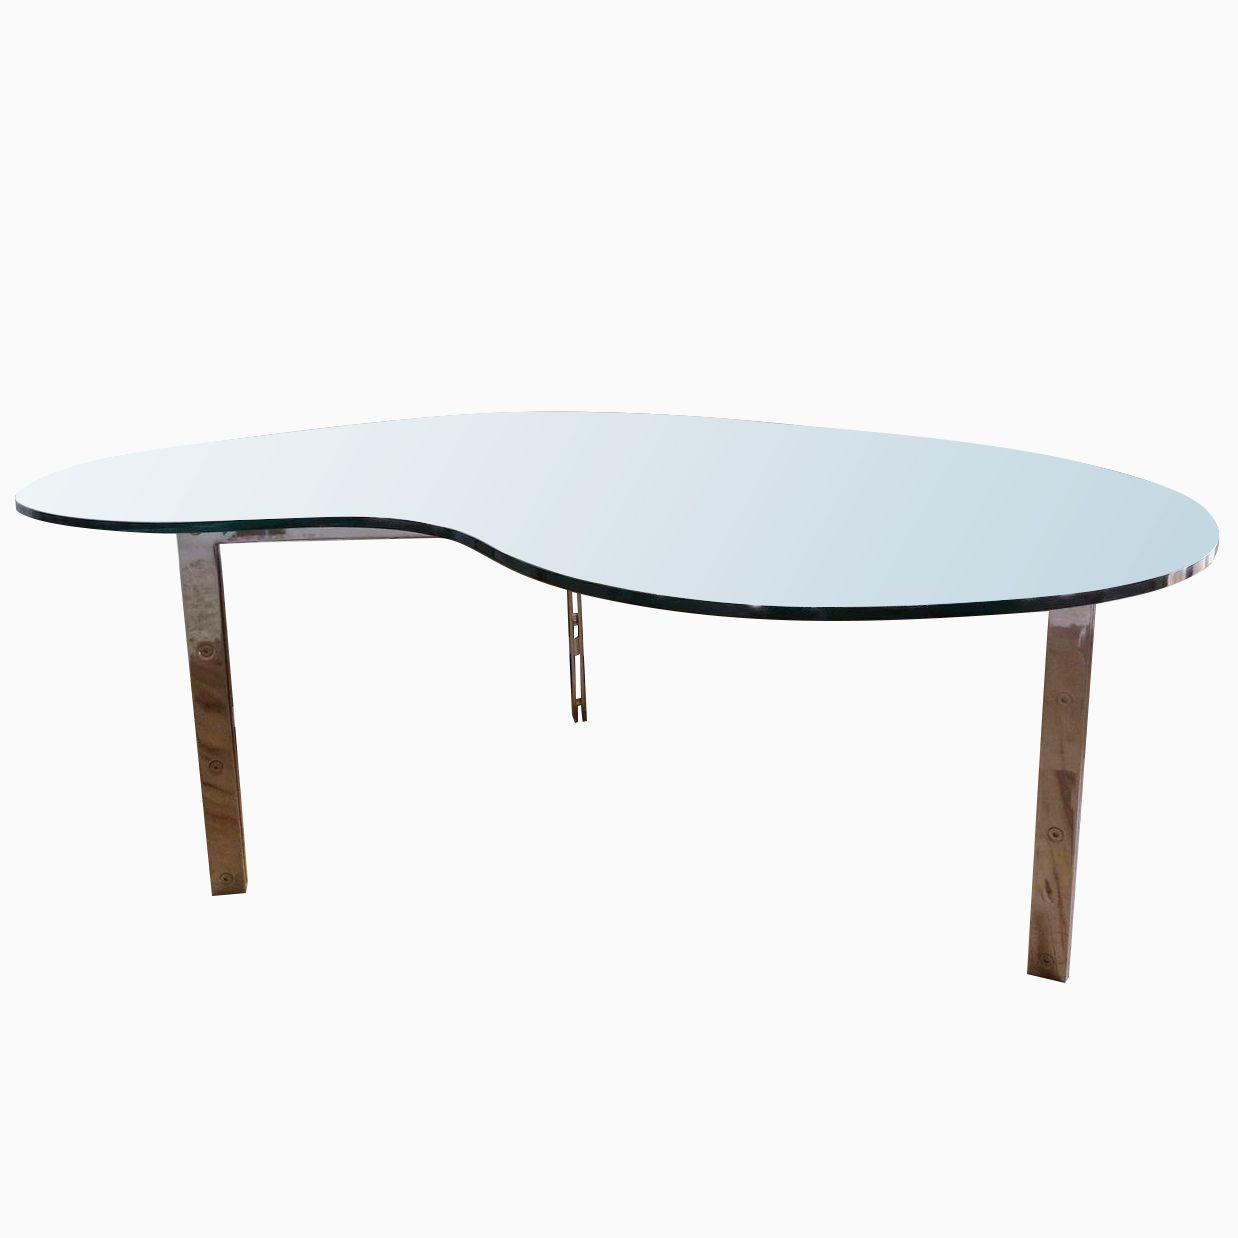 metal dining table base stainless steel kitchen table Metal dining table base Custom Made Metal Modern Sculptural Polished Stainless Steel Dining Table Base